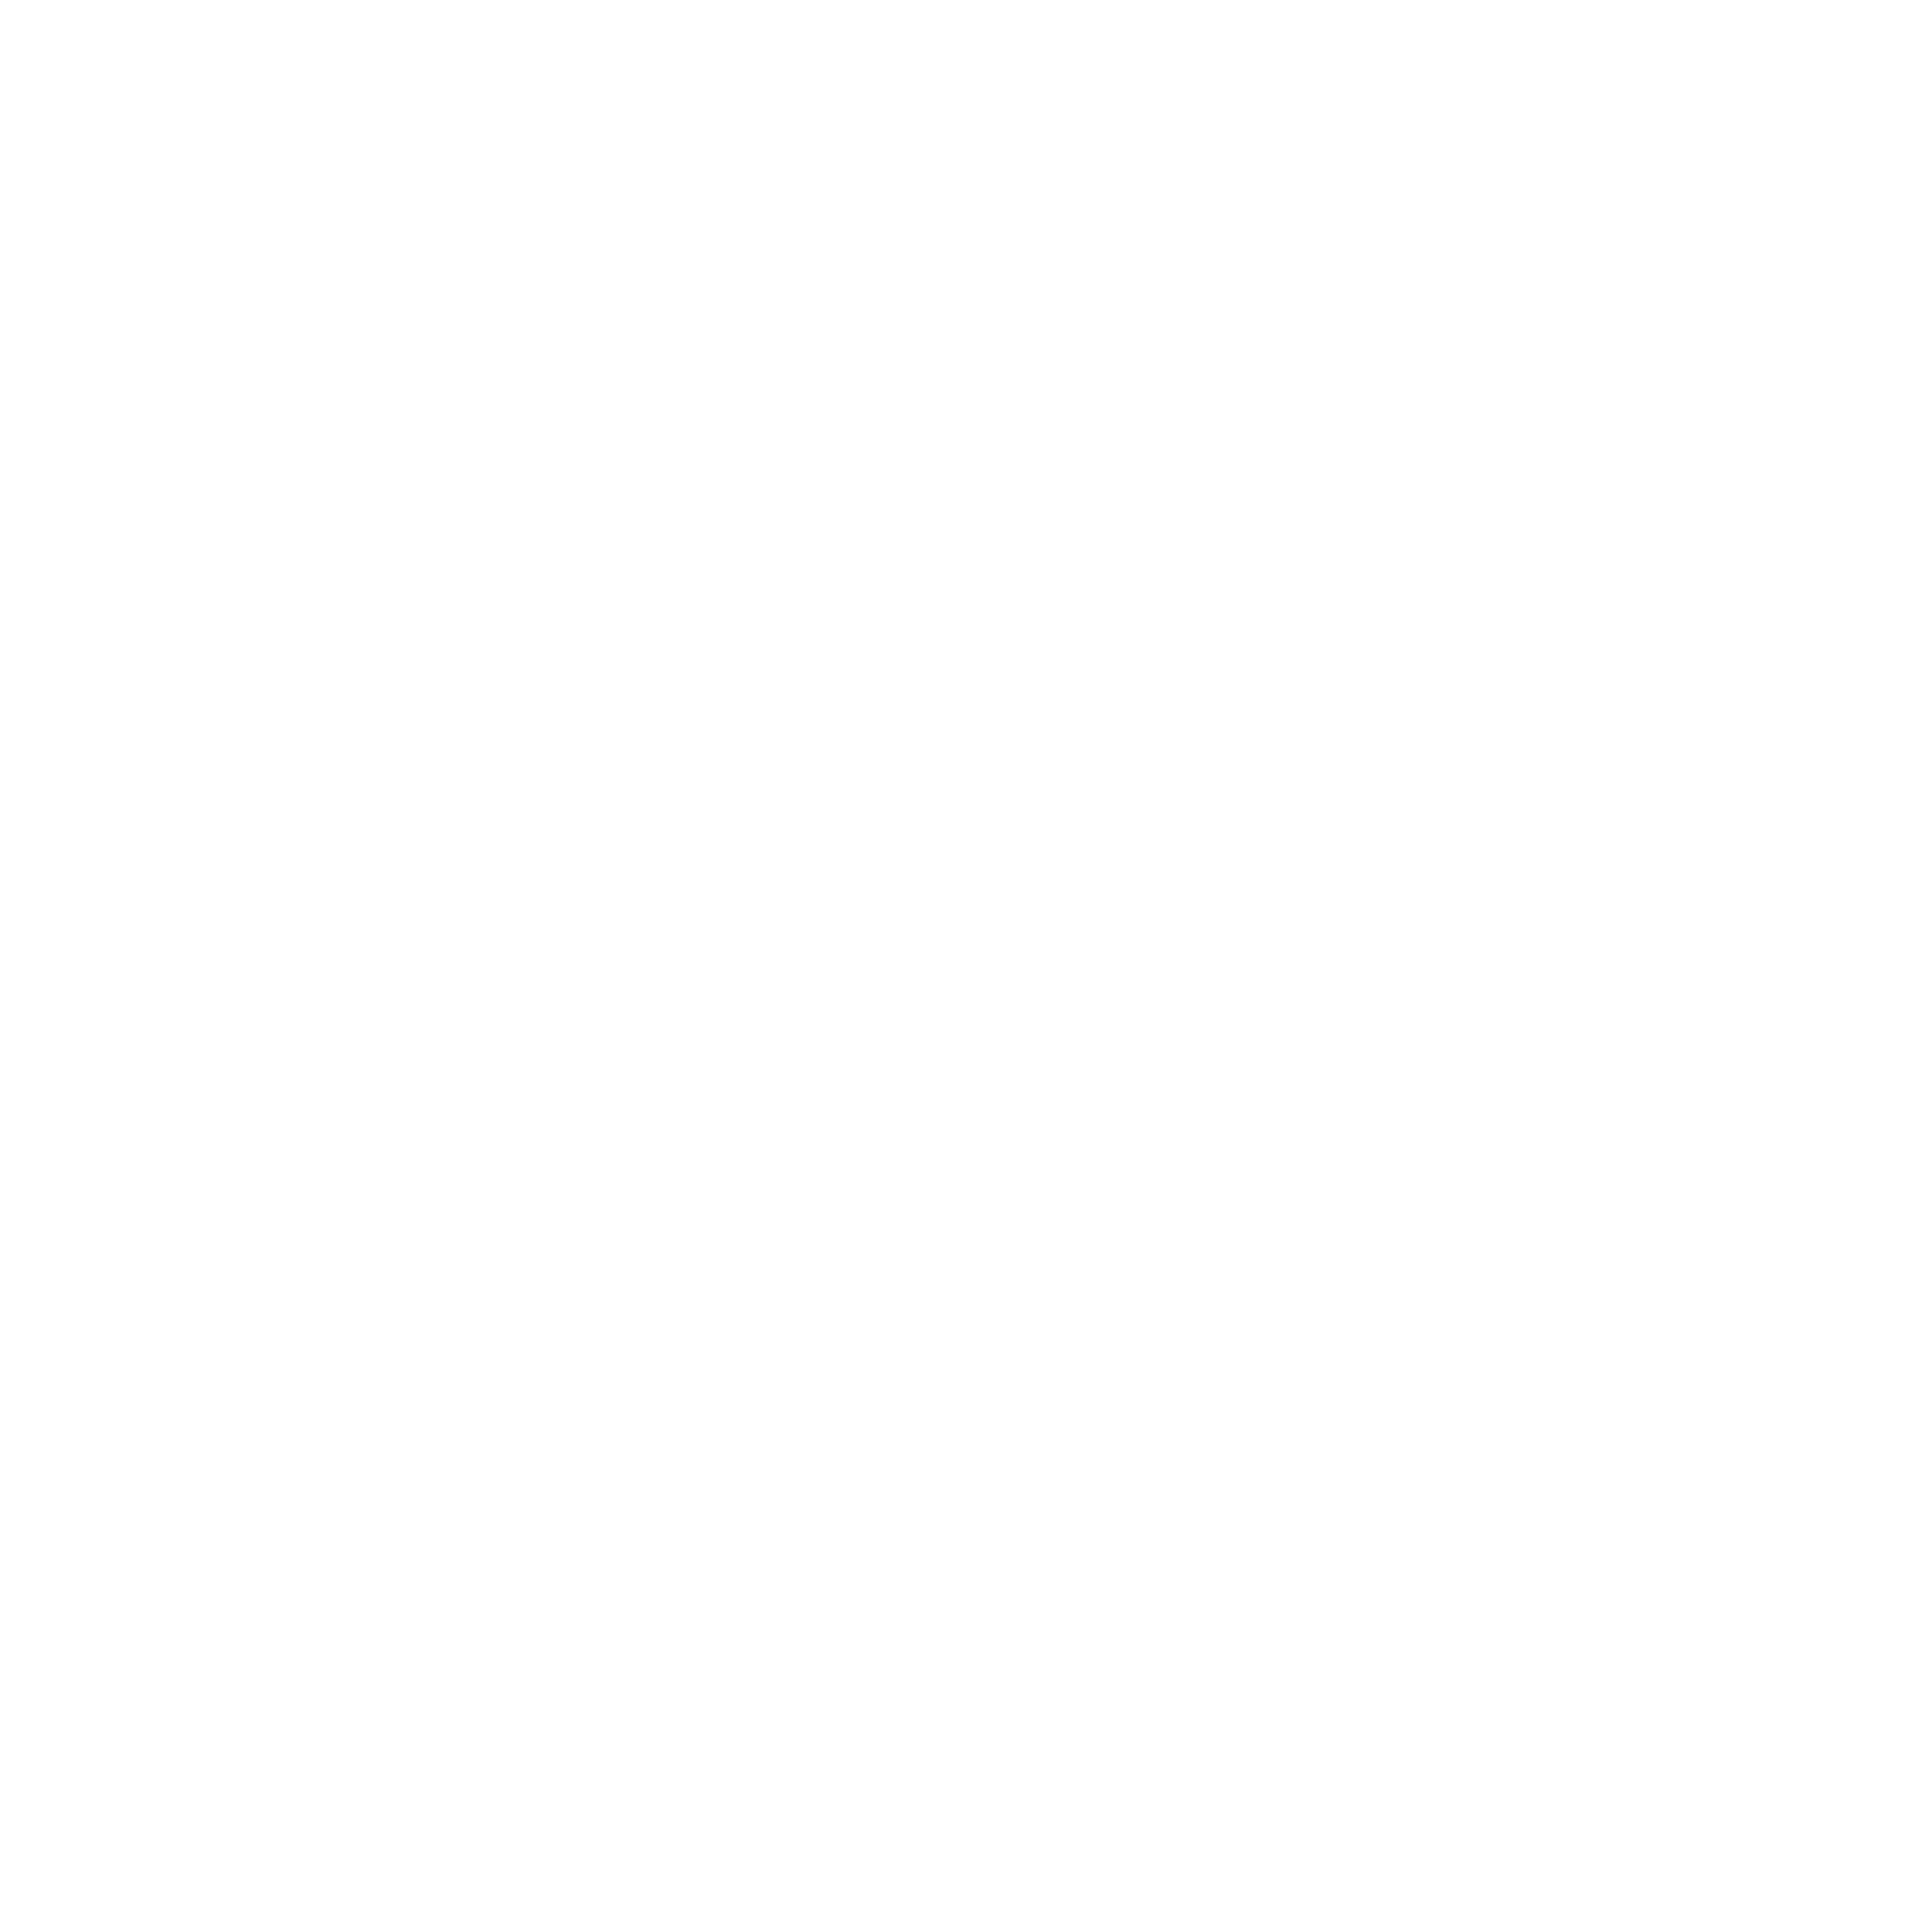 logo-pineapple-solo-white.png